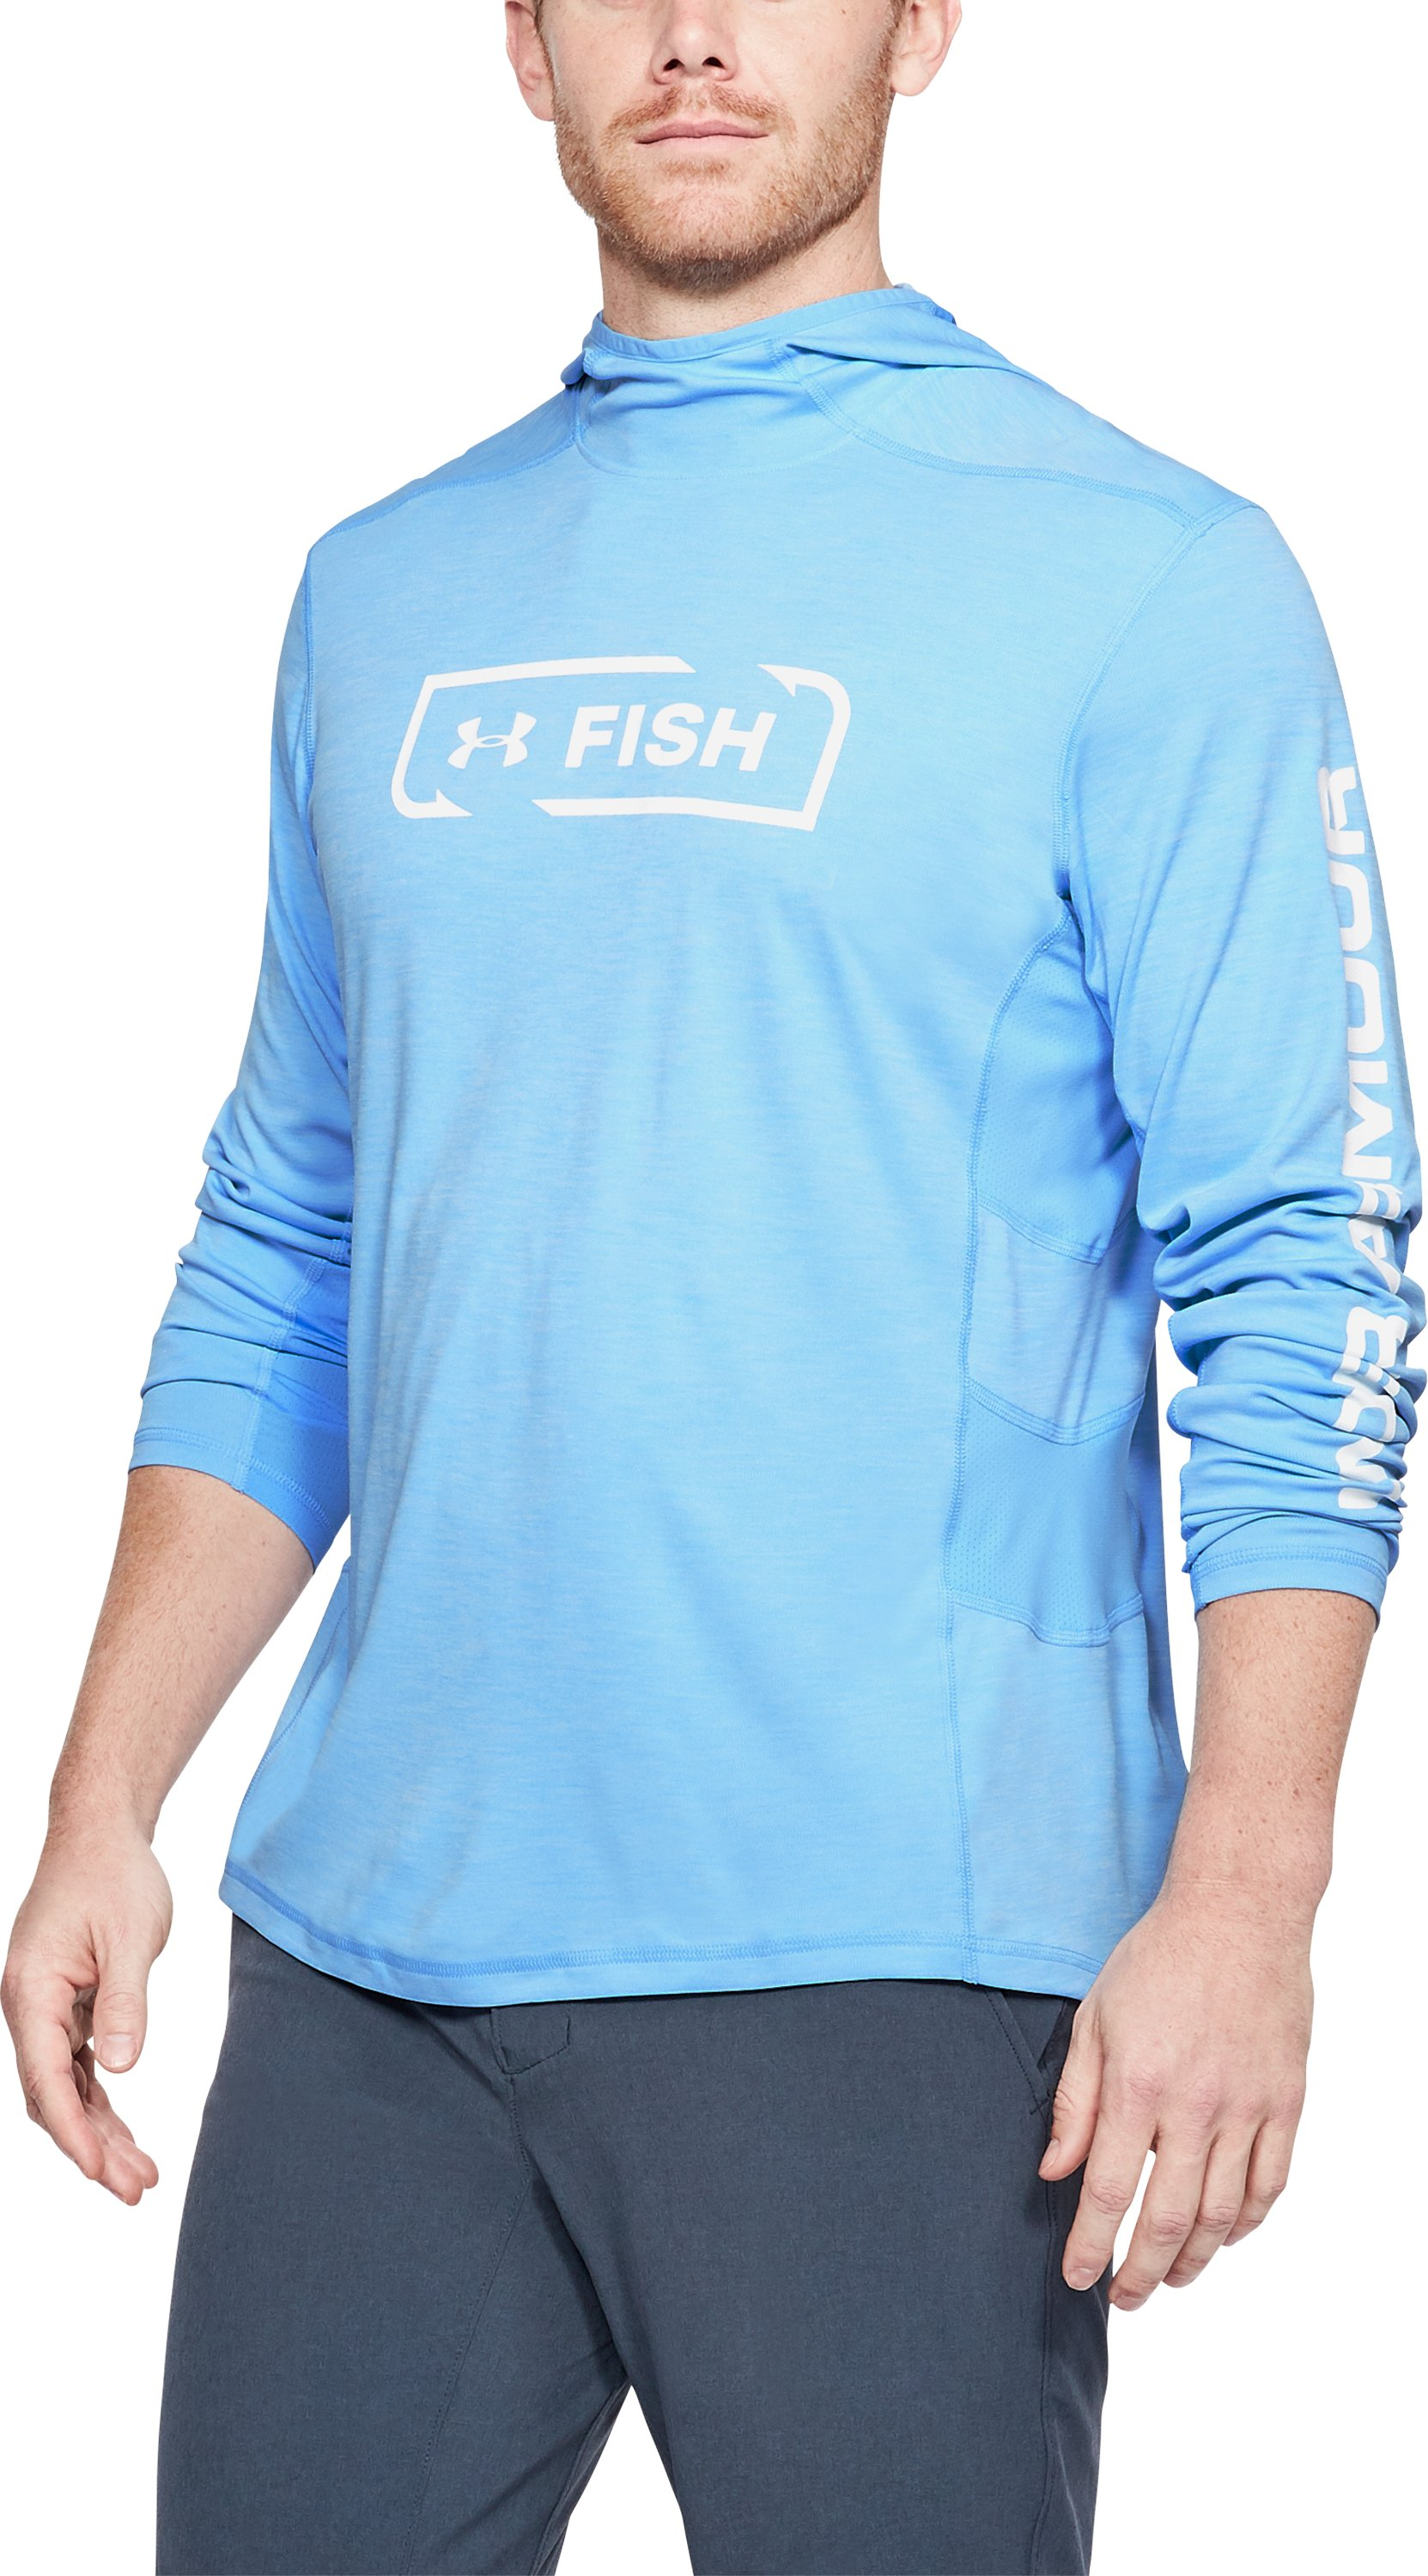 Men's UA Fish Hunter Tech Hoodie, CAROLINA BLUE LIGHT HEATHER